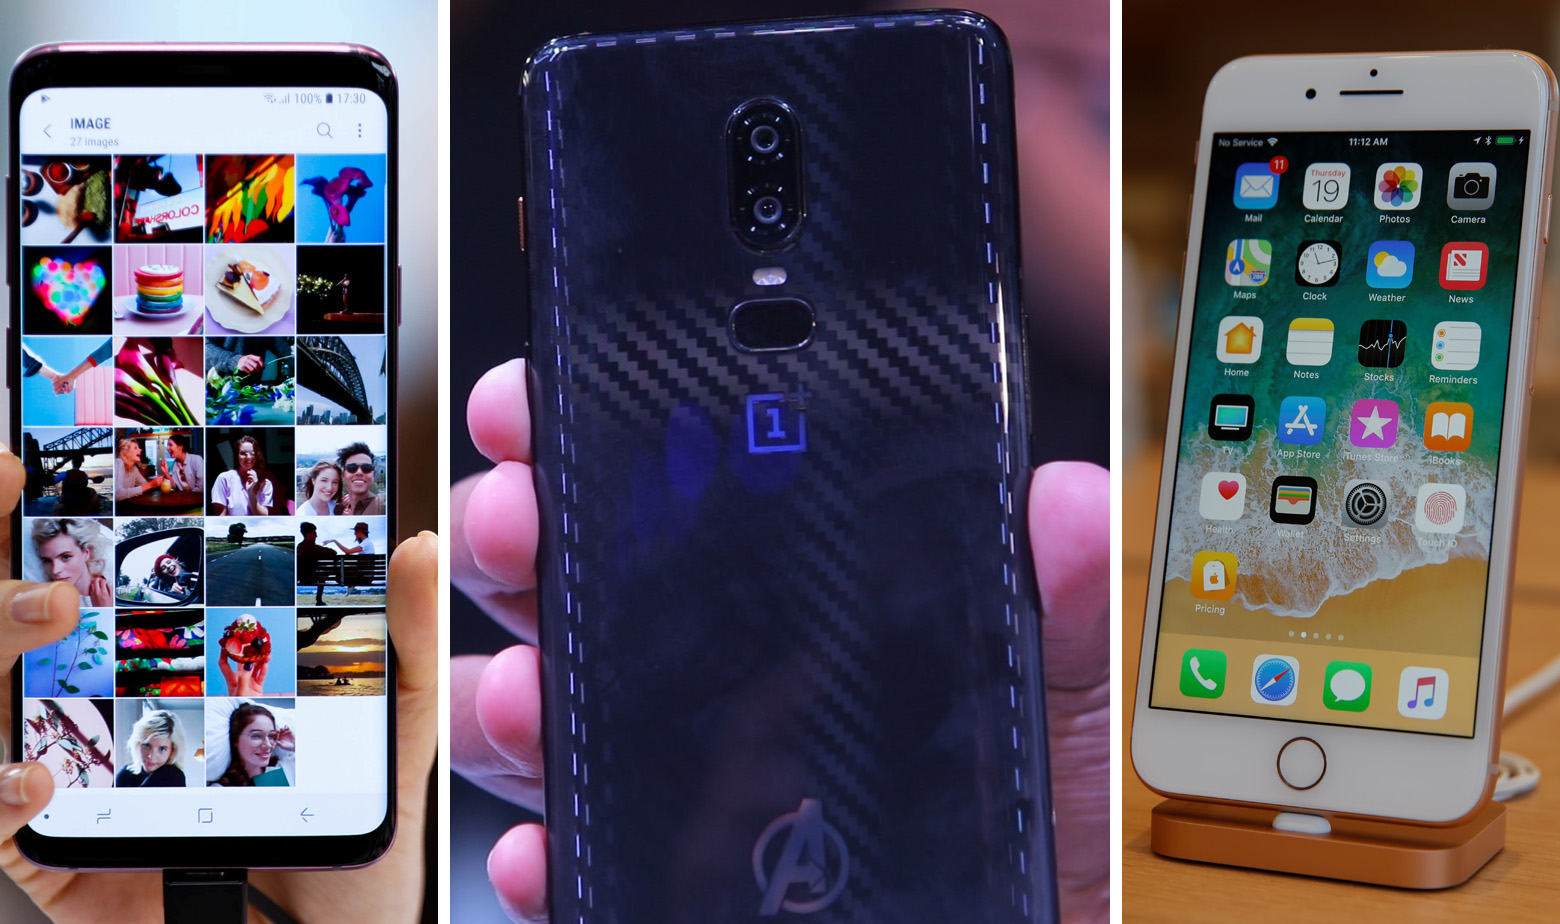 Samsung Galaxy S9 Plus, One Plus 6, Apple iPhone 8 Plus